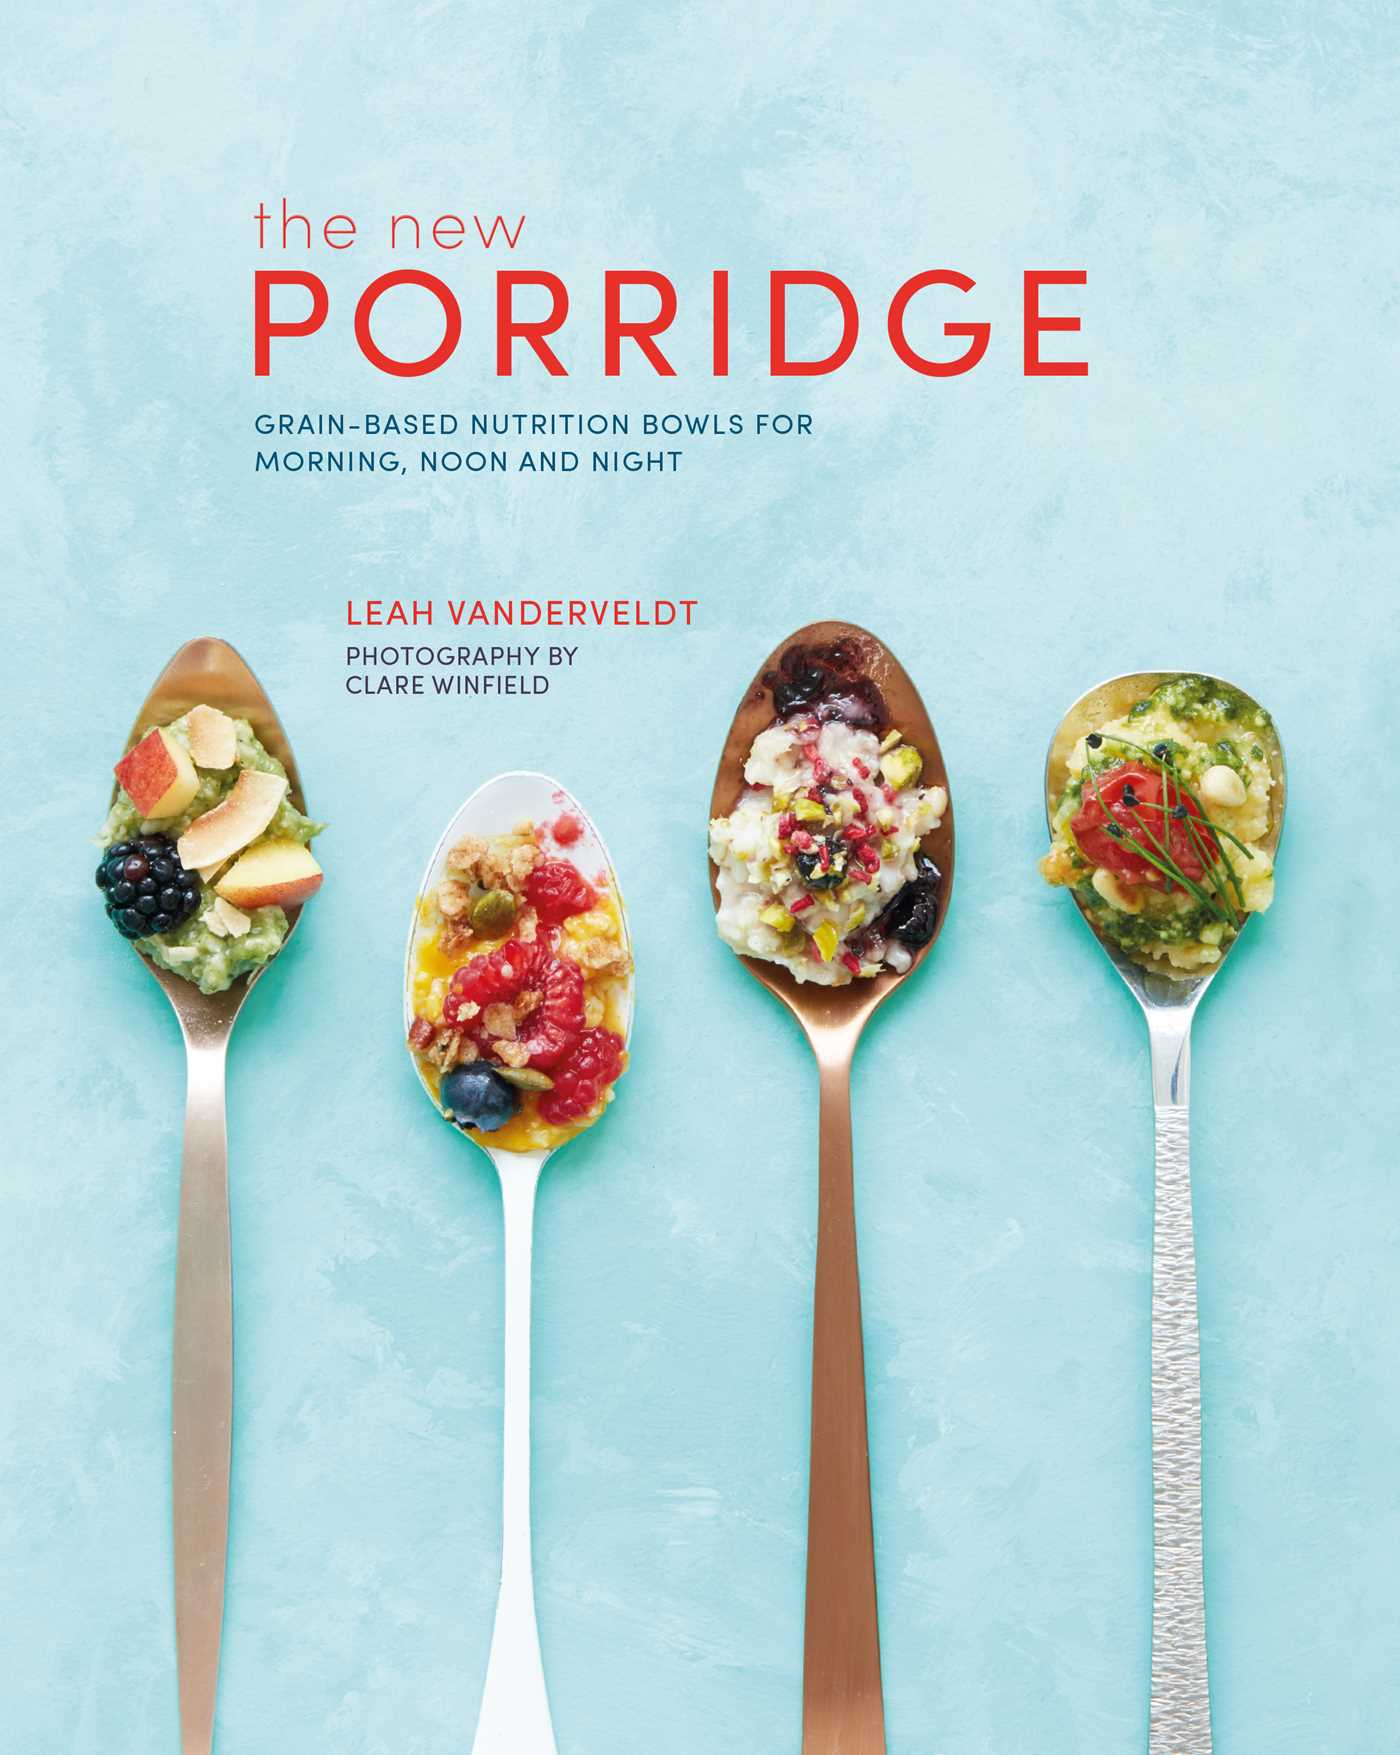 New porridge 9781849759304 hr